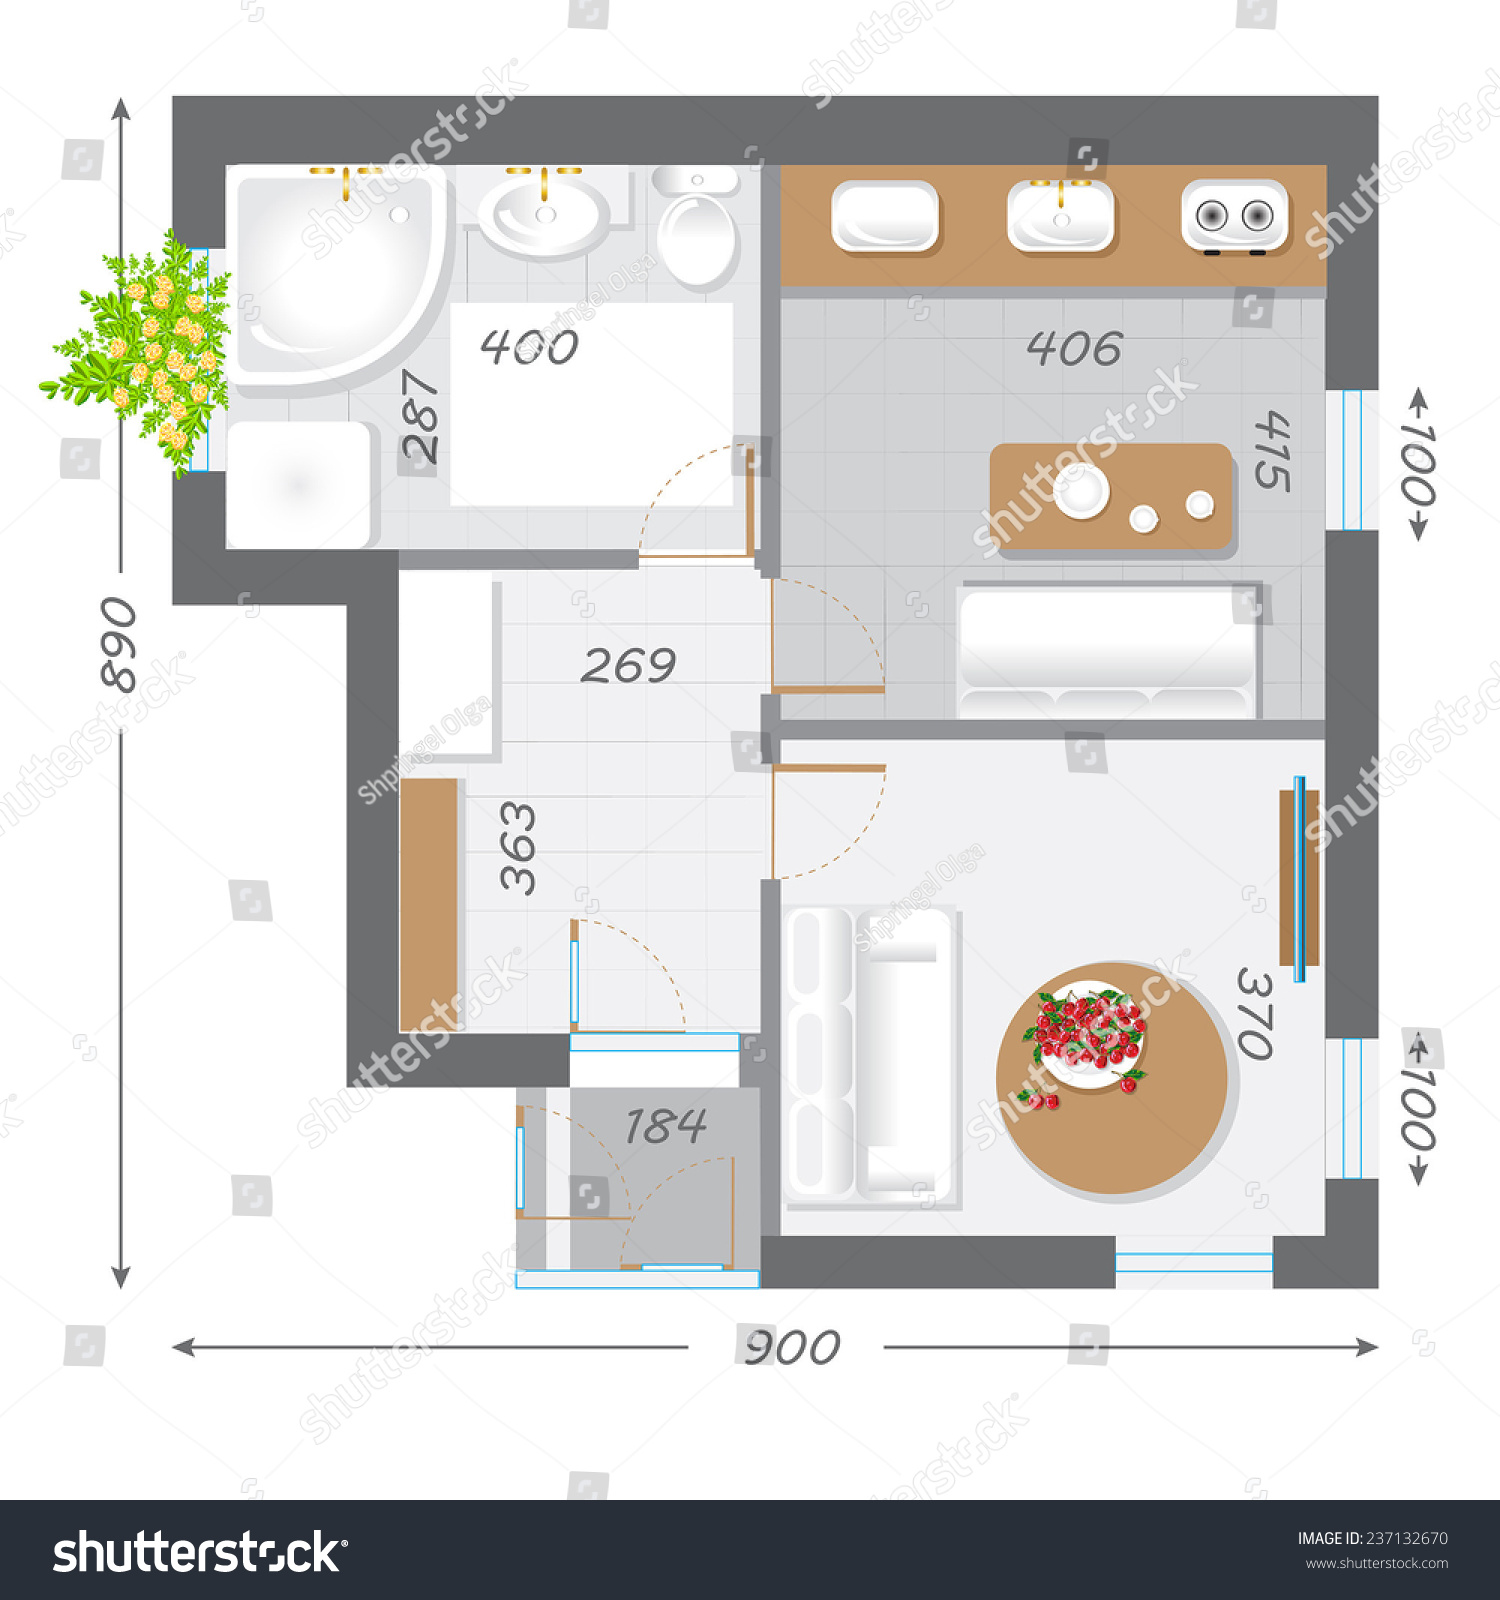 Project plan for building a house